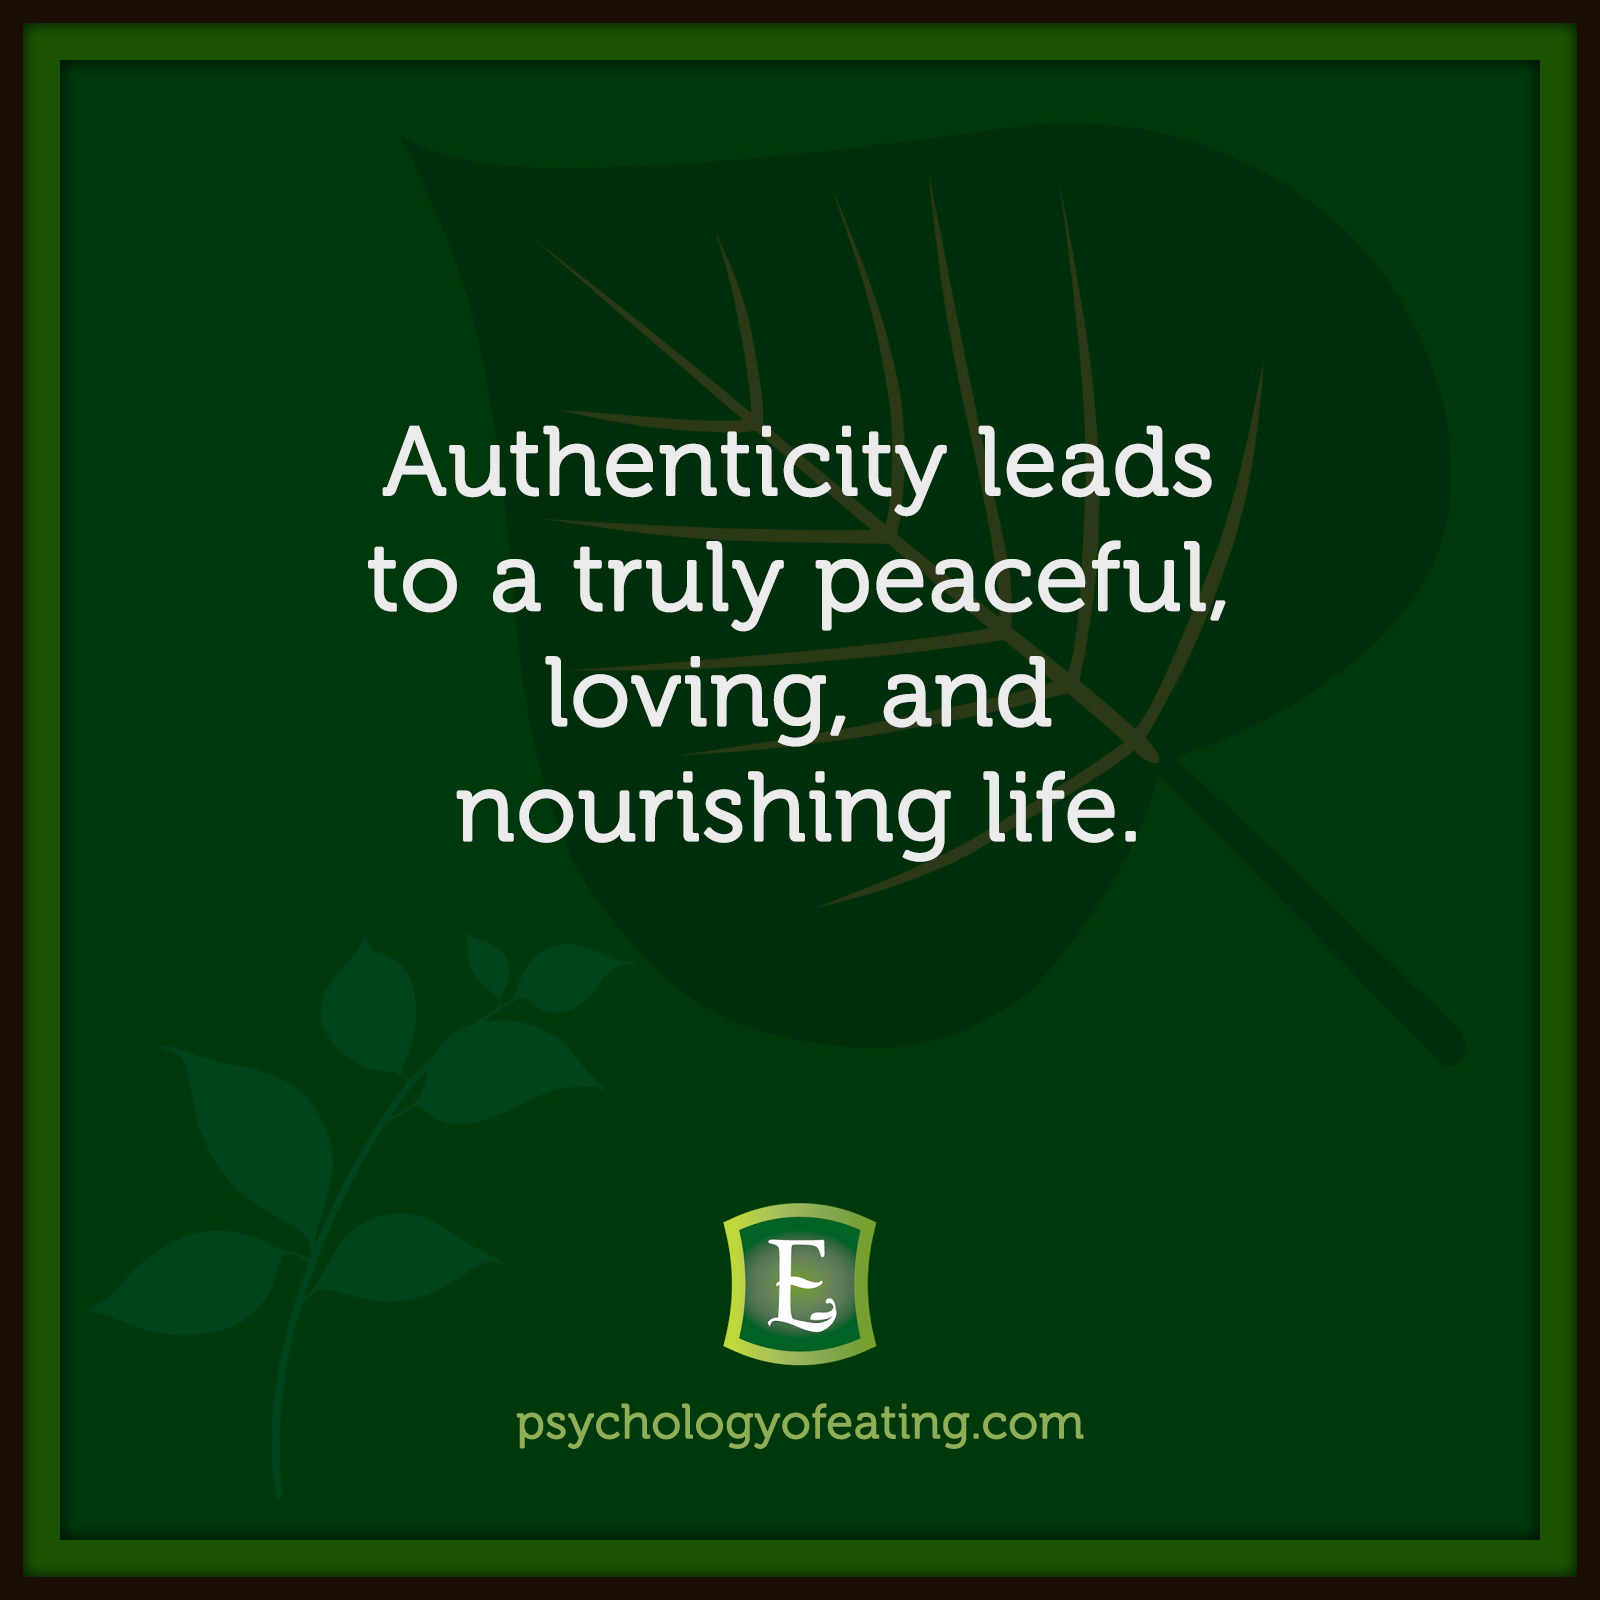 Authenticity leads to a truly peaceful, loving, and nourishing life. #health #nutrition #eatingpsychology #IPE